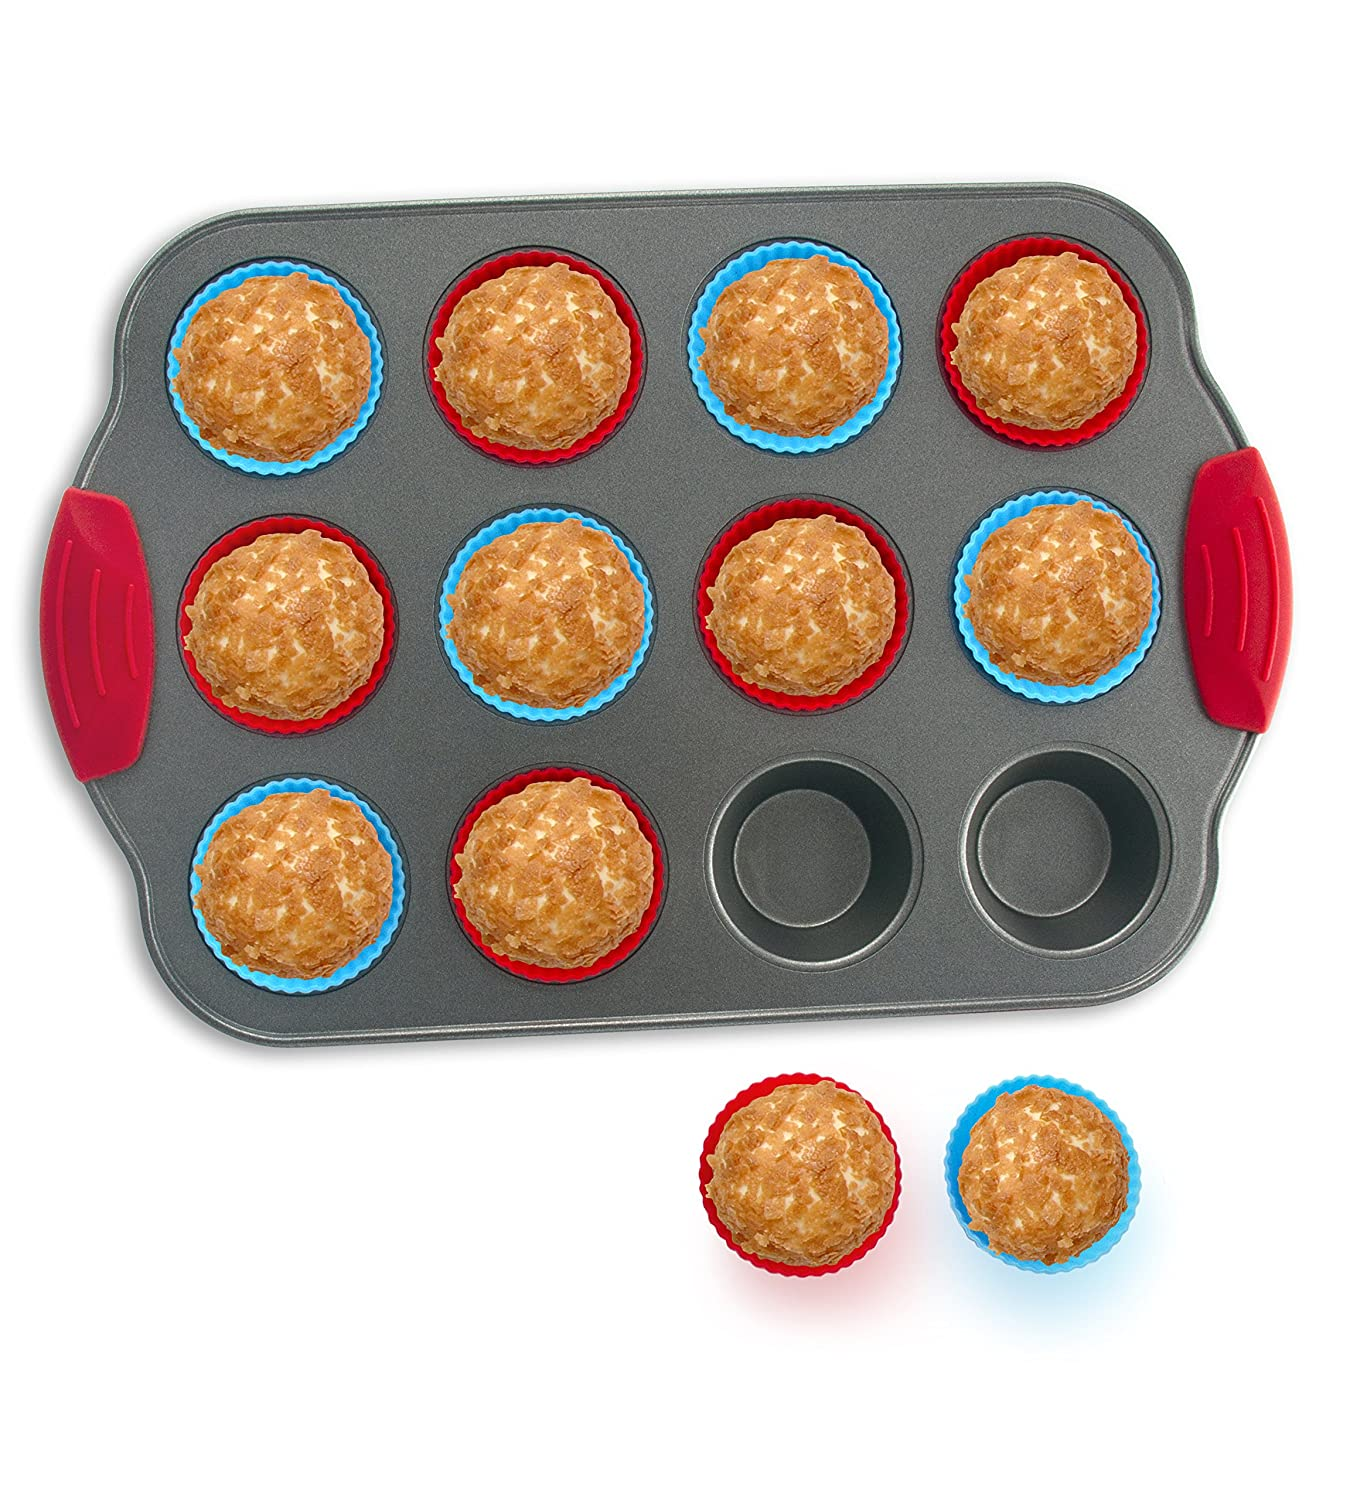 12-Cup Muffin Pan with Silicone Muffin Cups